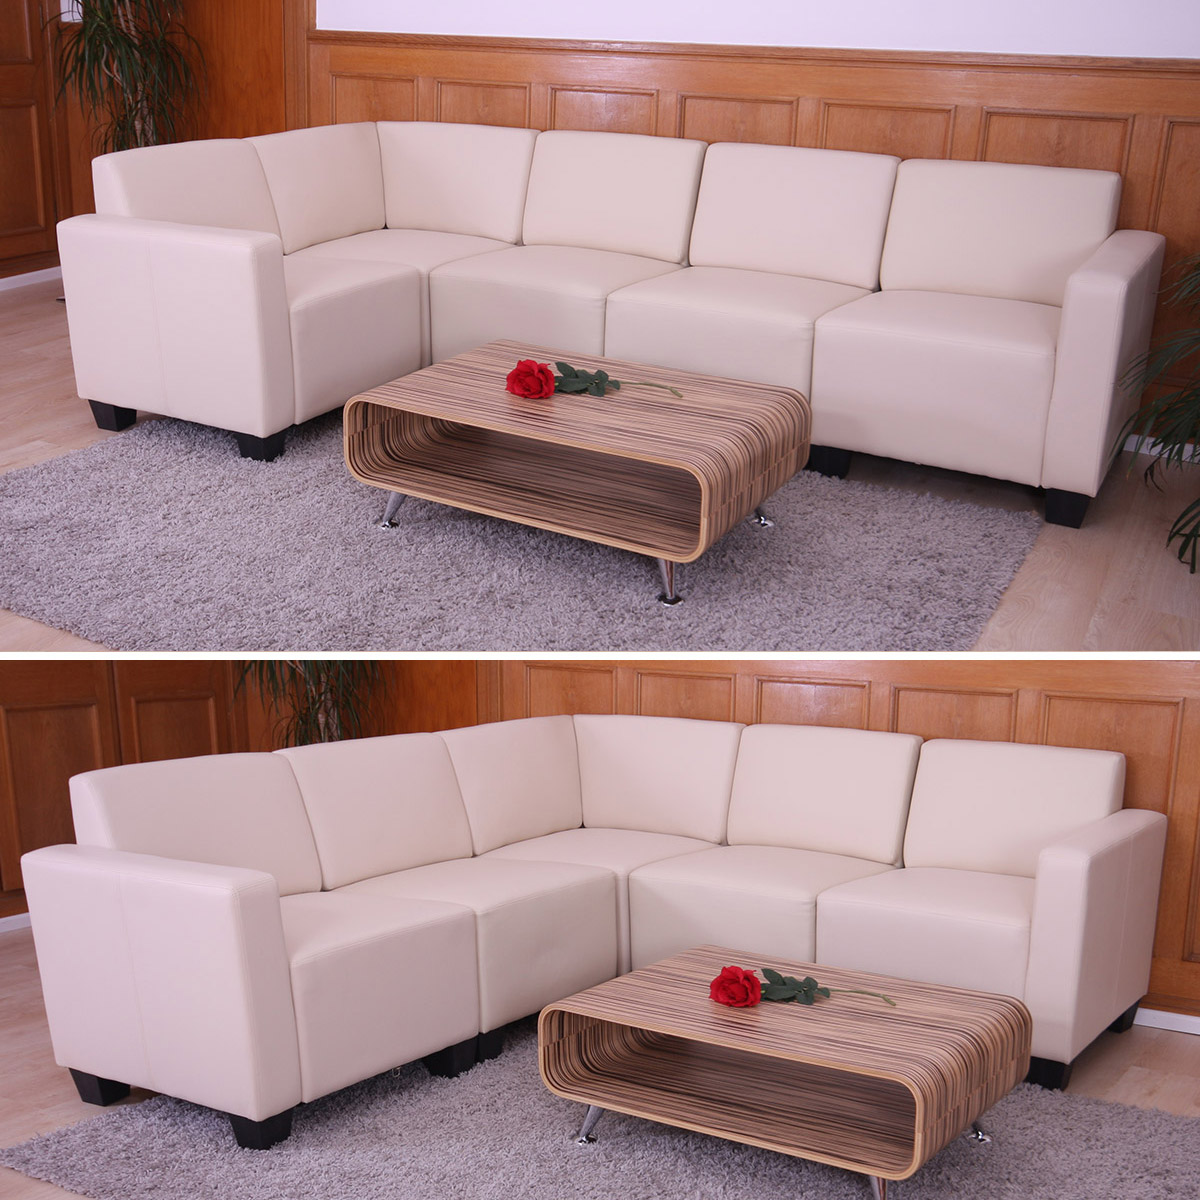 modular sofa system couch garnitur lyon 5 kunstleder creme. Black Bedroom Furniture Sets. Home Design Ideas